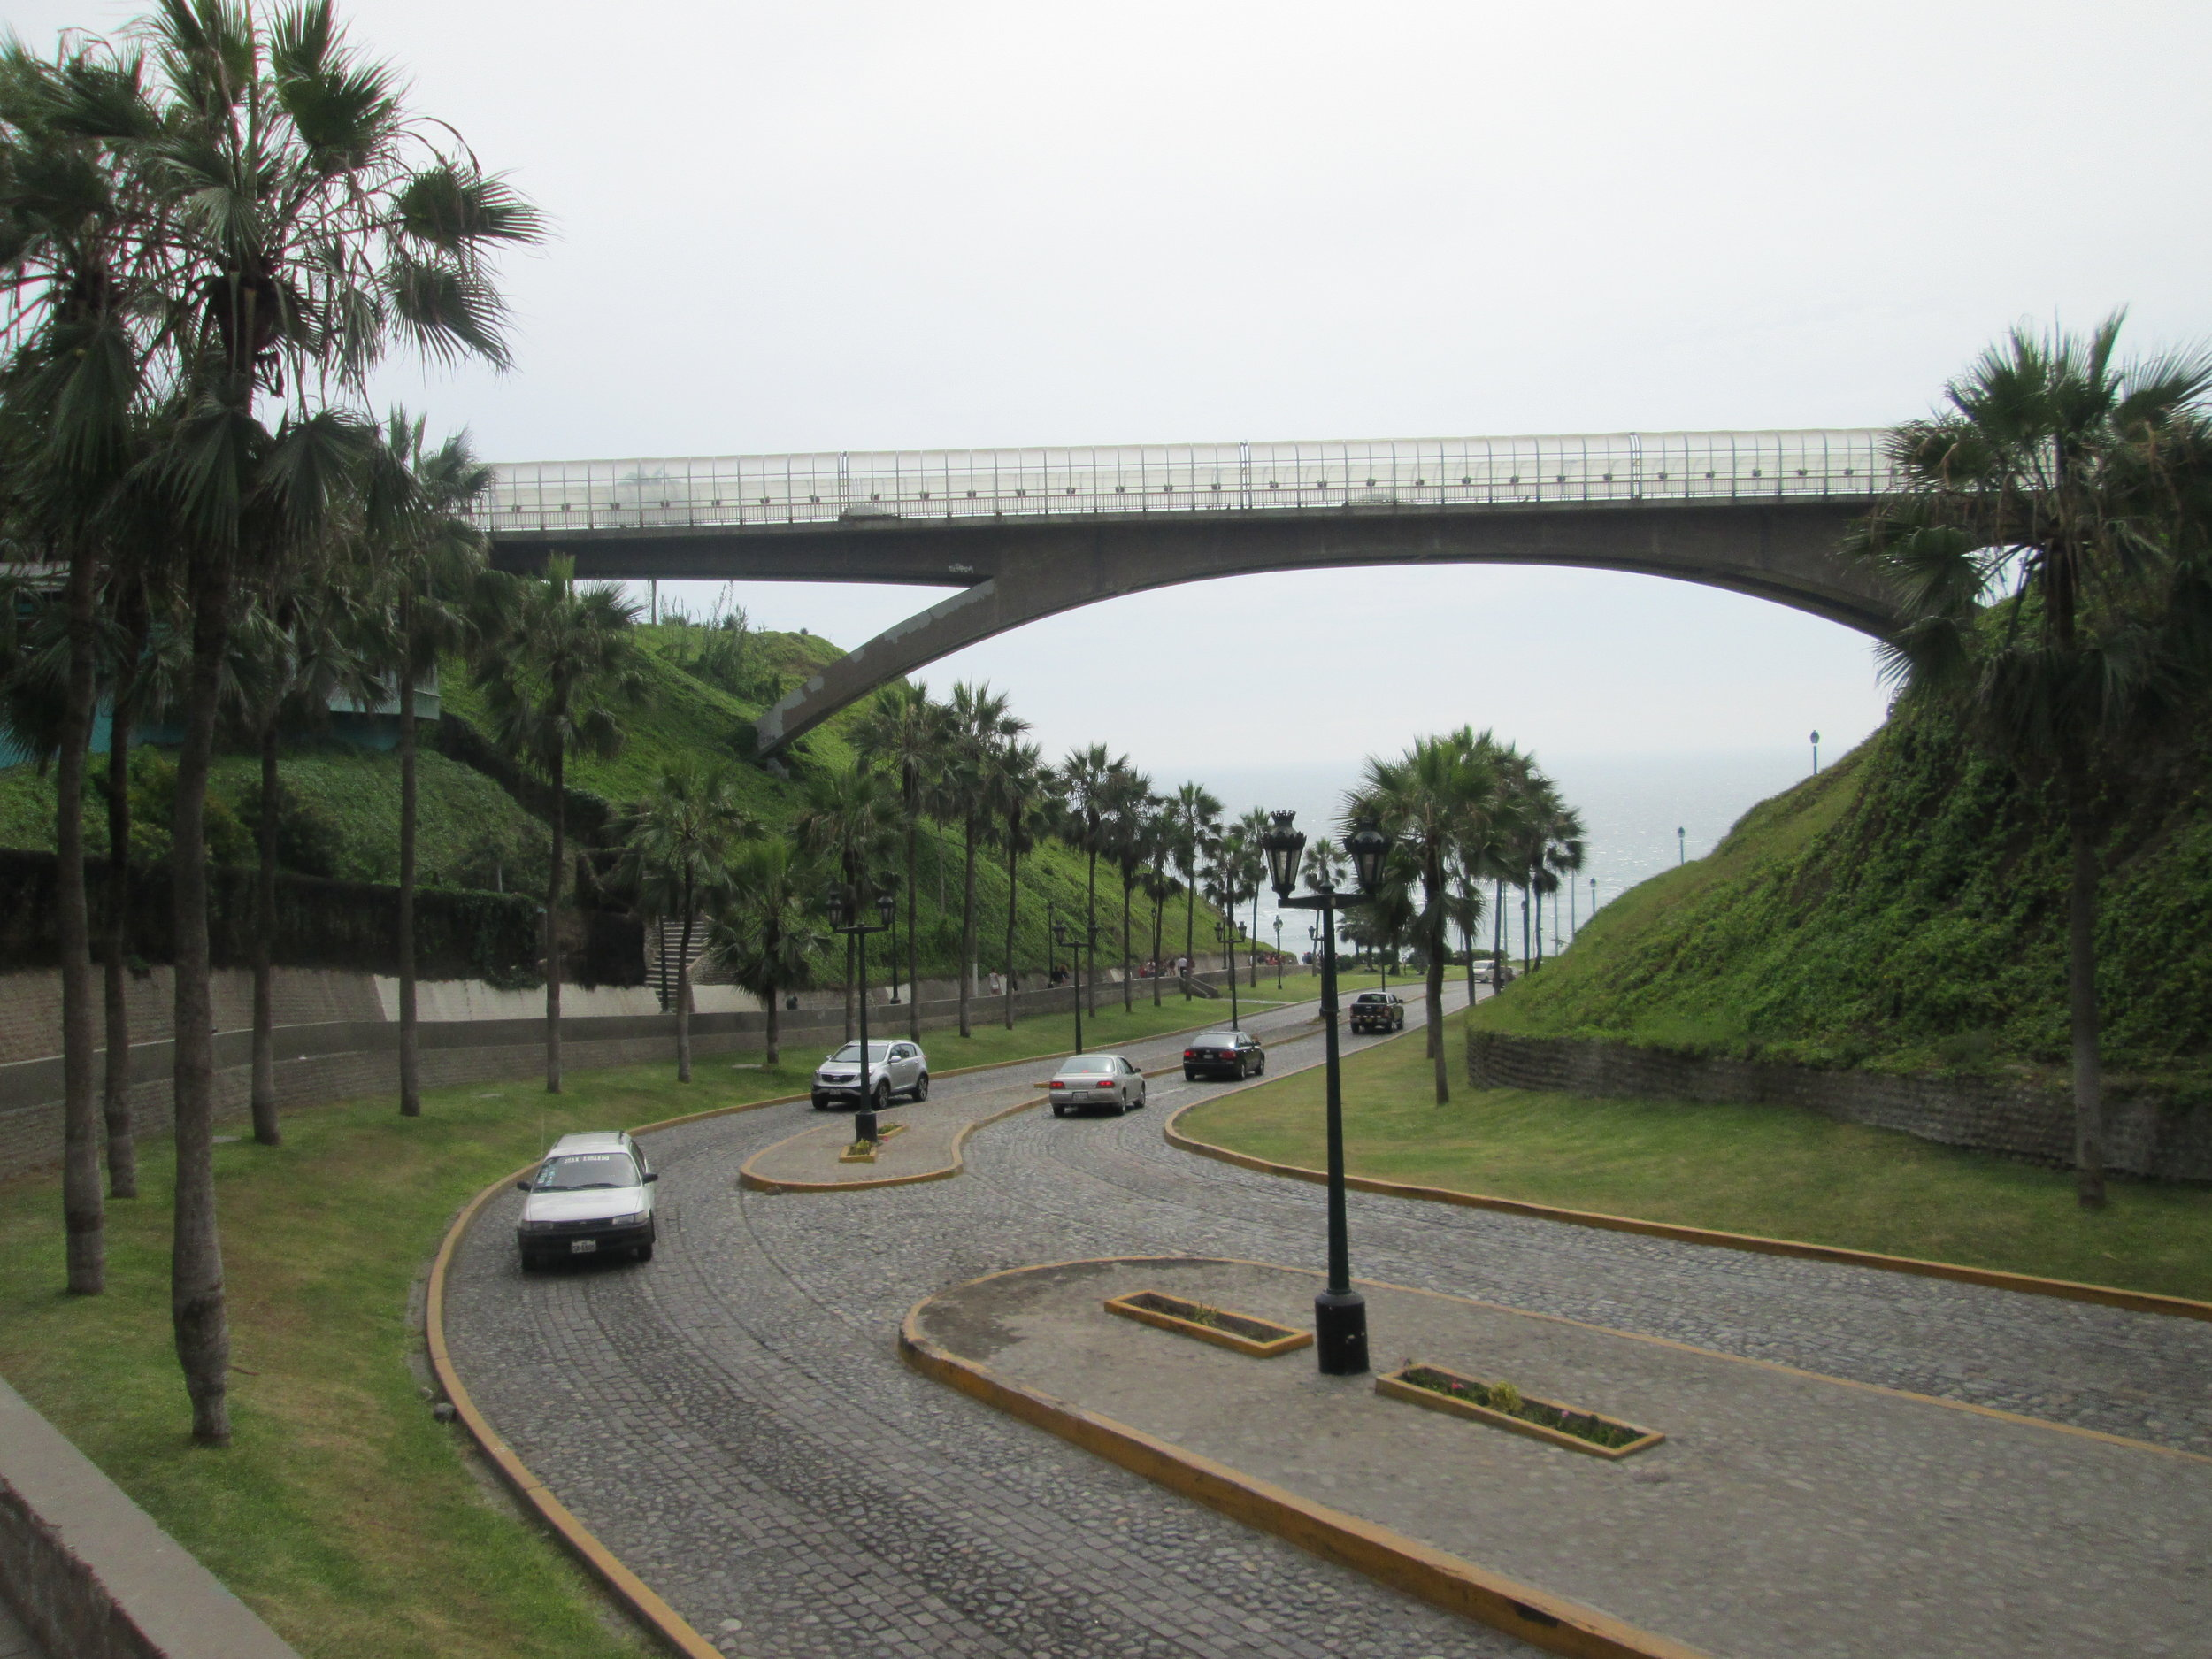 The path down to the Sea in Miraflores, Lima